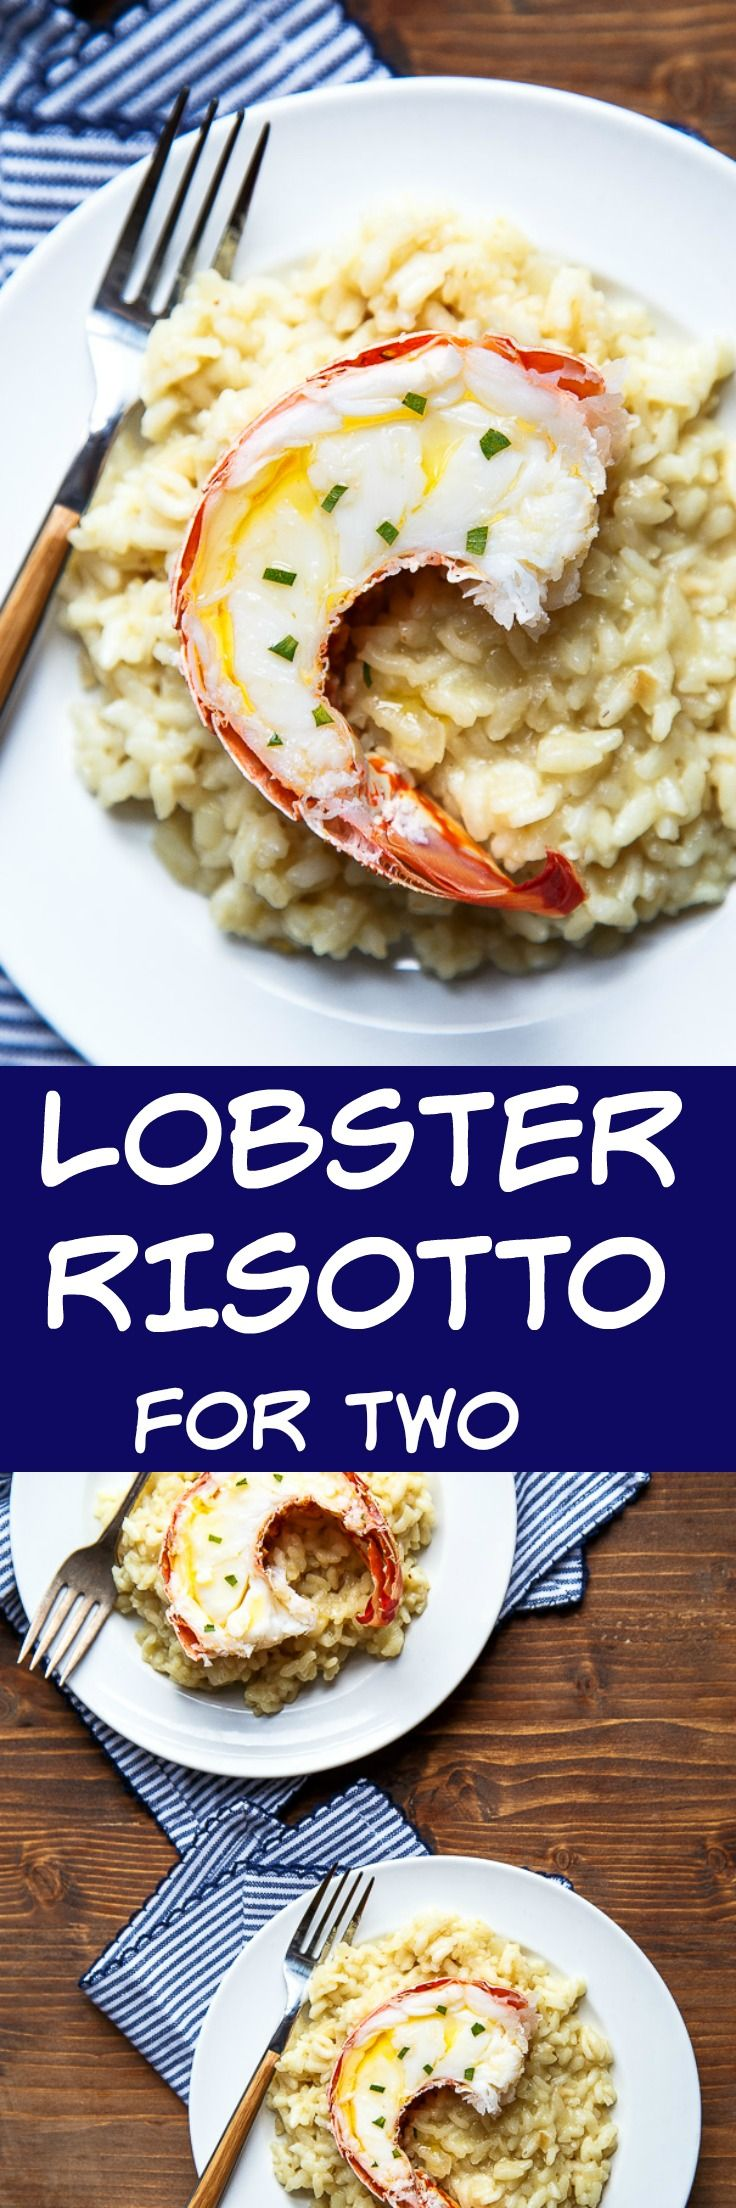 Best 25+ Lobster risotto ideas on Pinterest | Hell's kitchen risotto recipe, Gordon ramsay ...